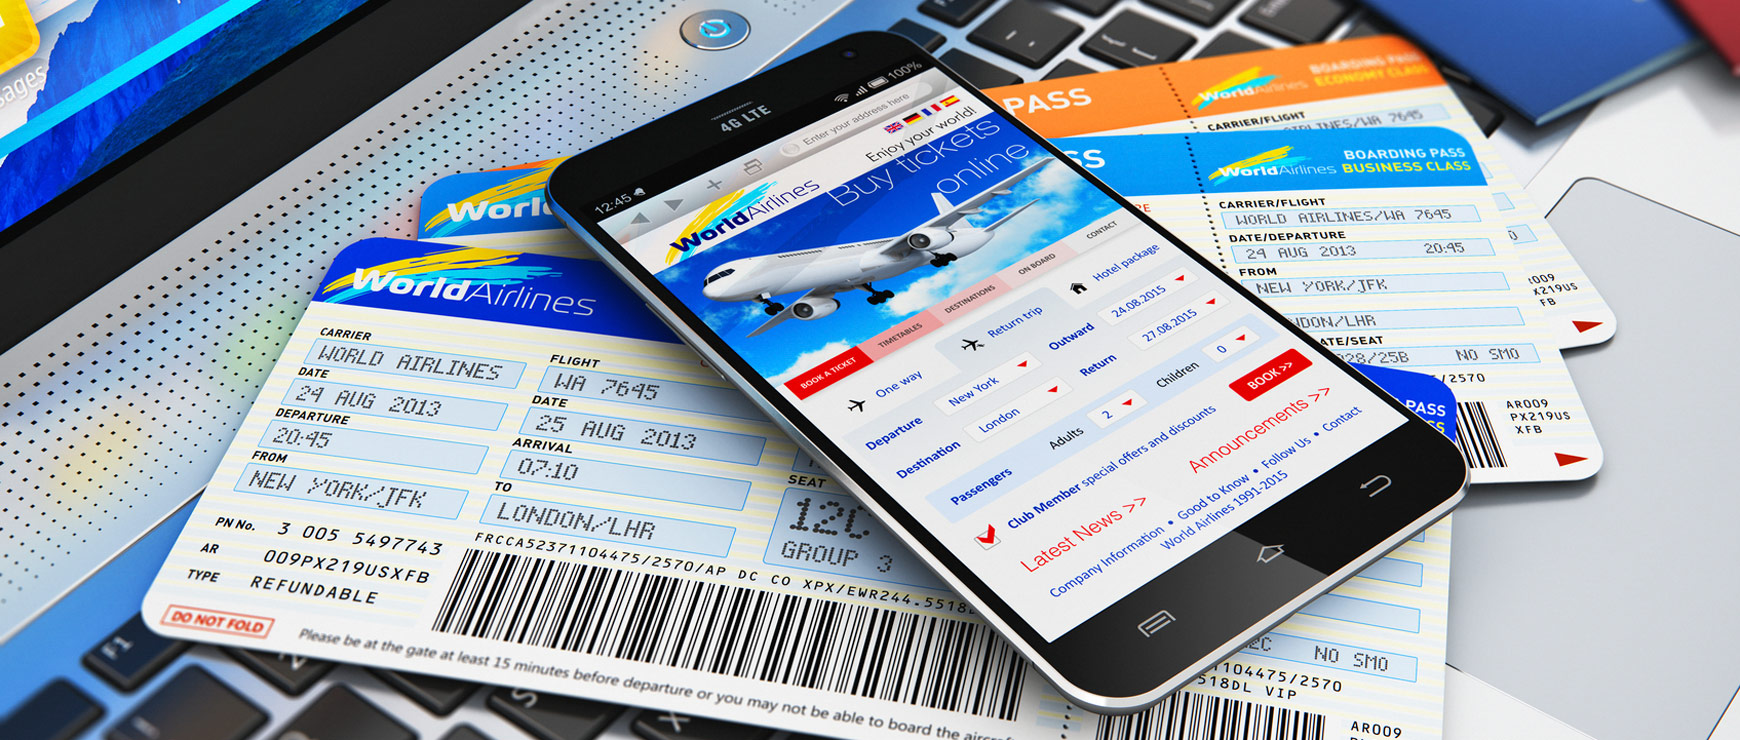 flight information on digital devices